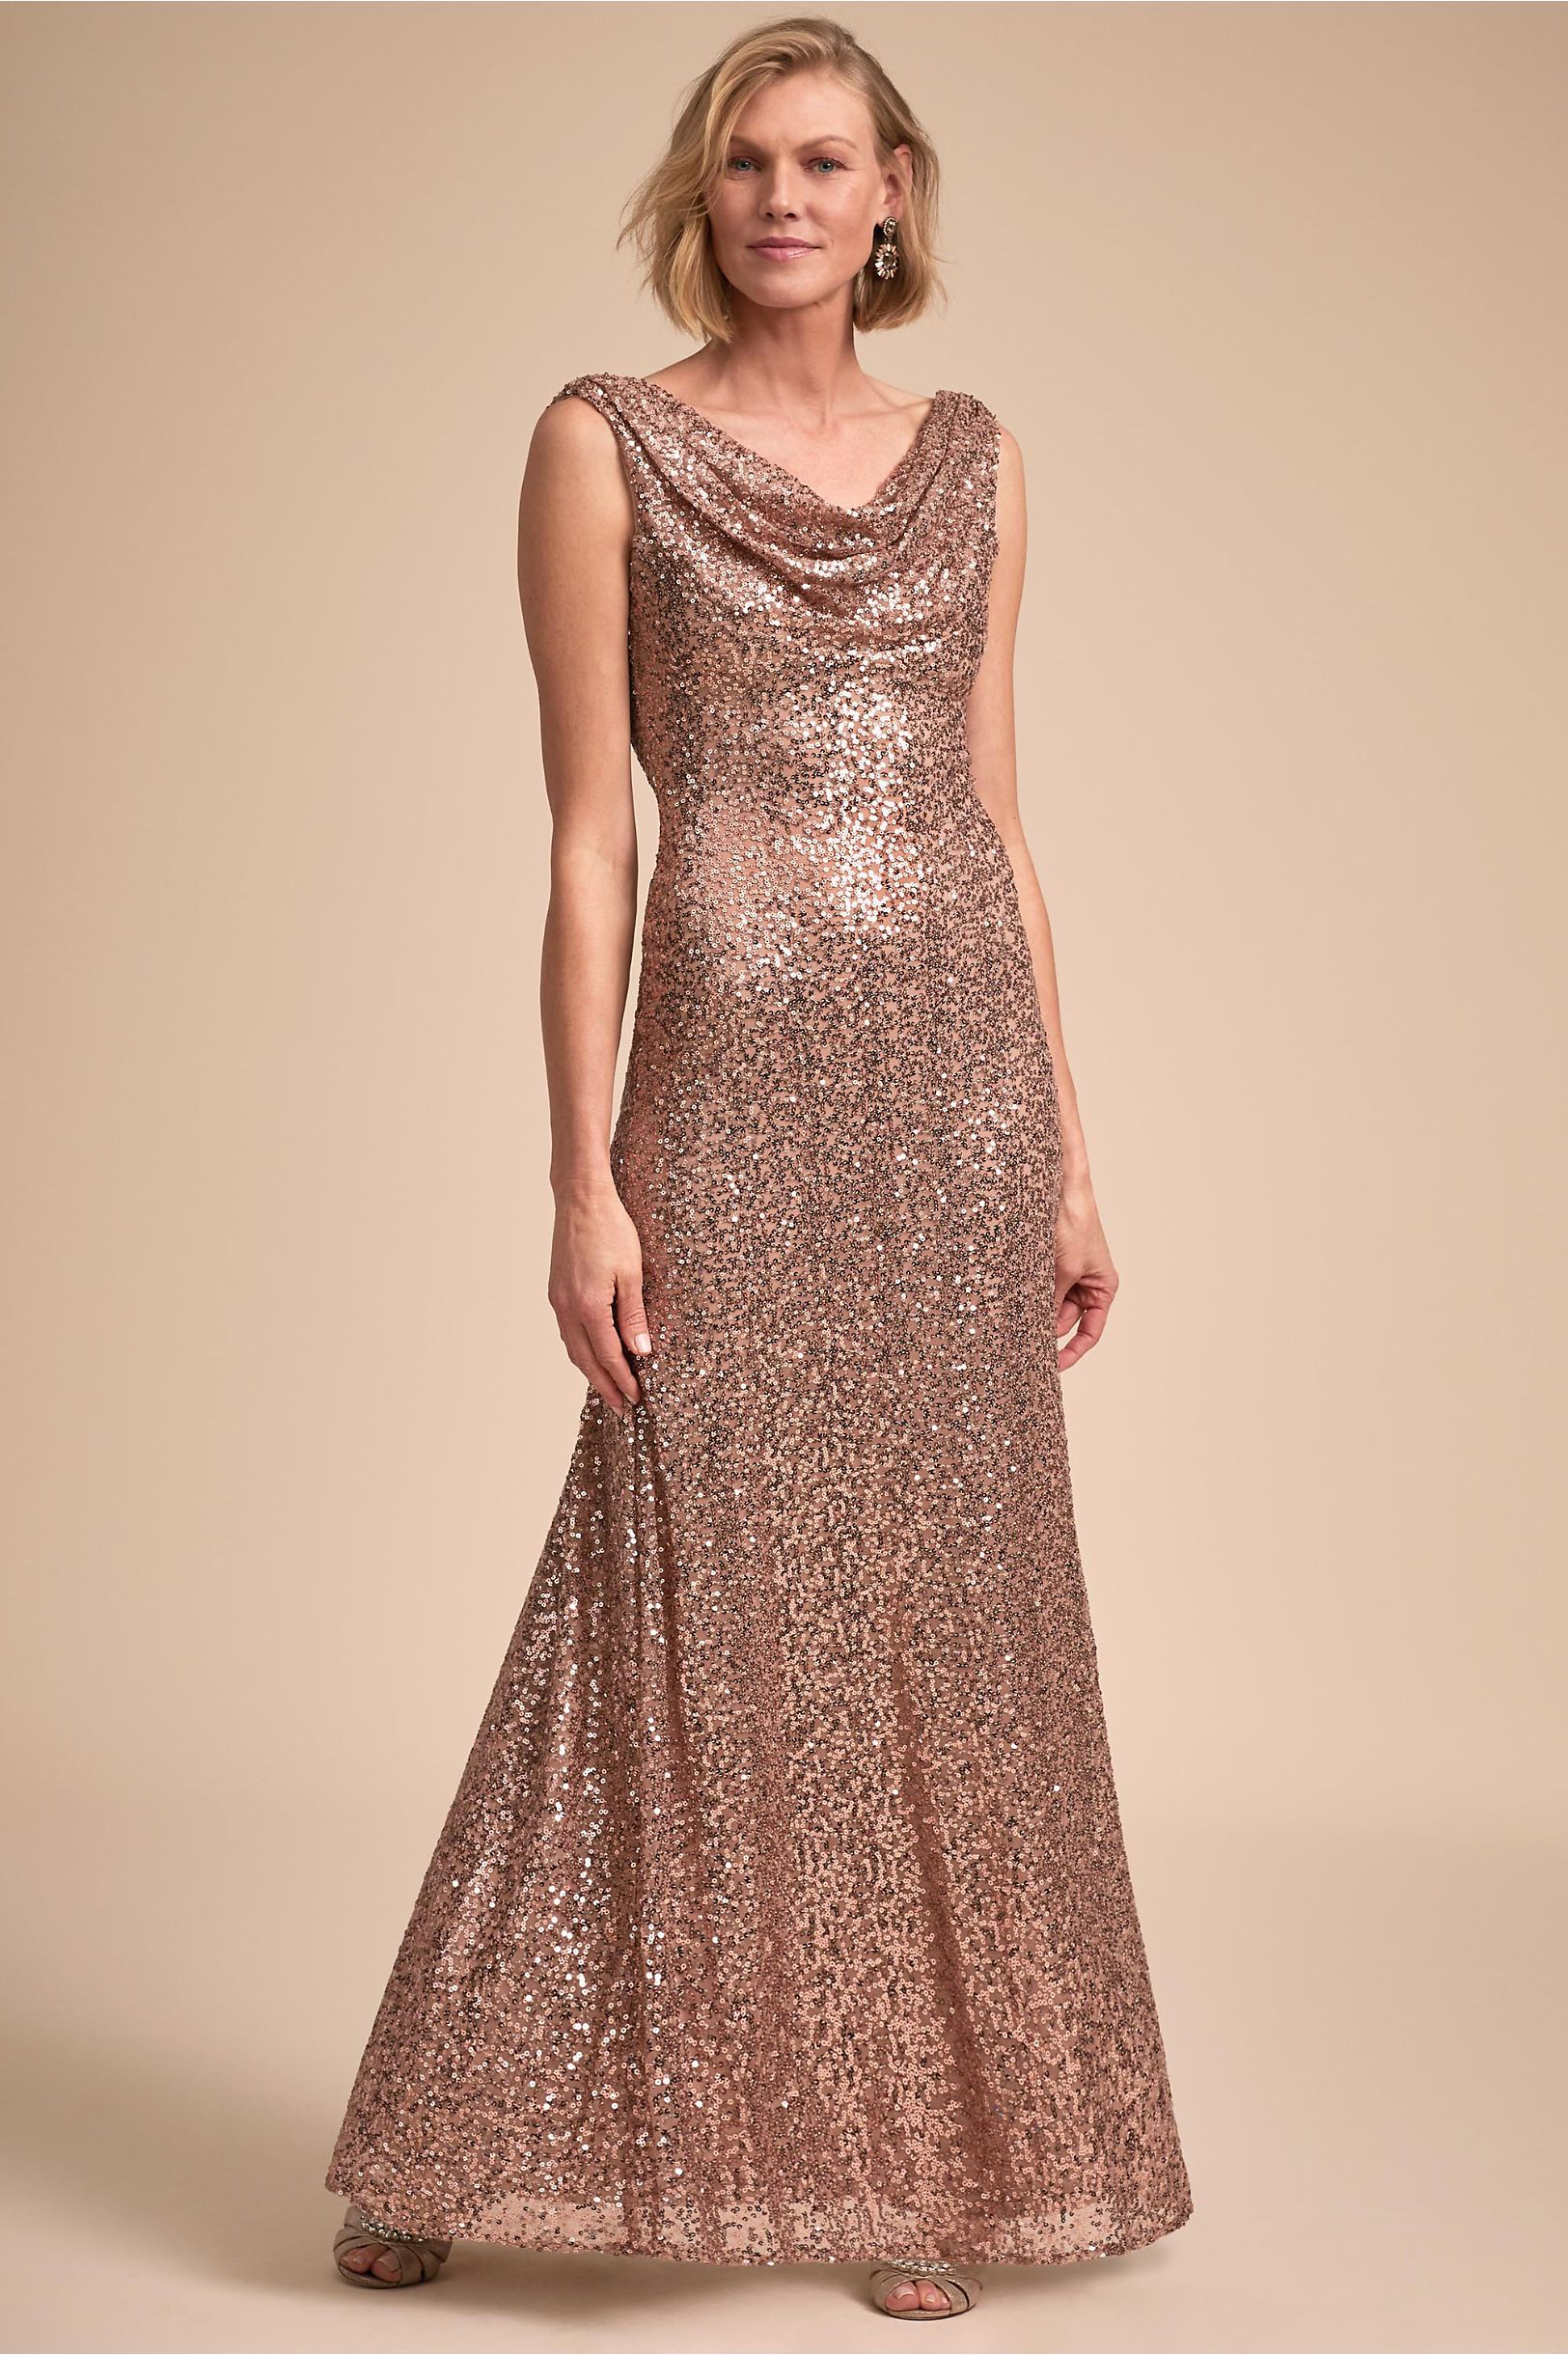 3422269c9fa Francia Dress Rose Gold in Occasion Dresses